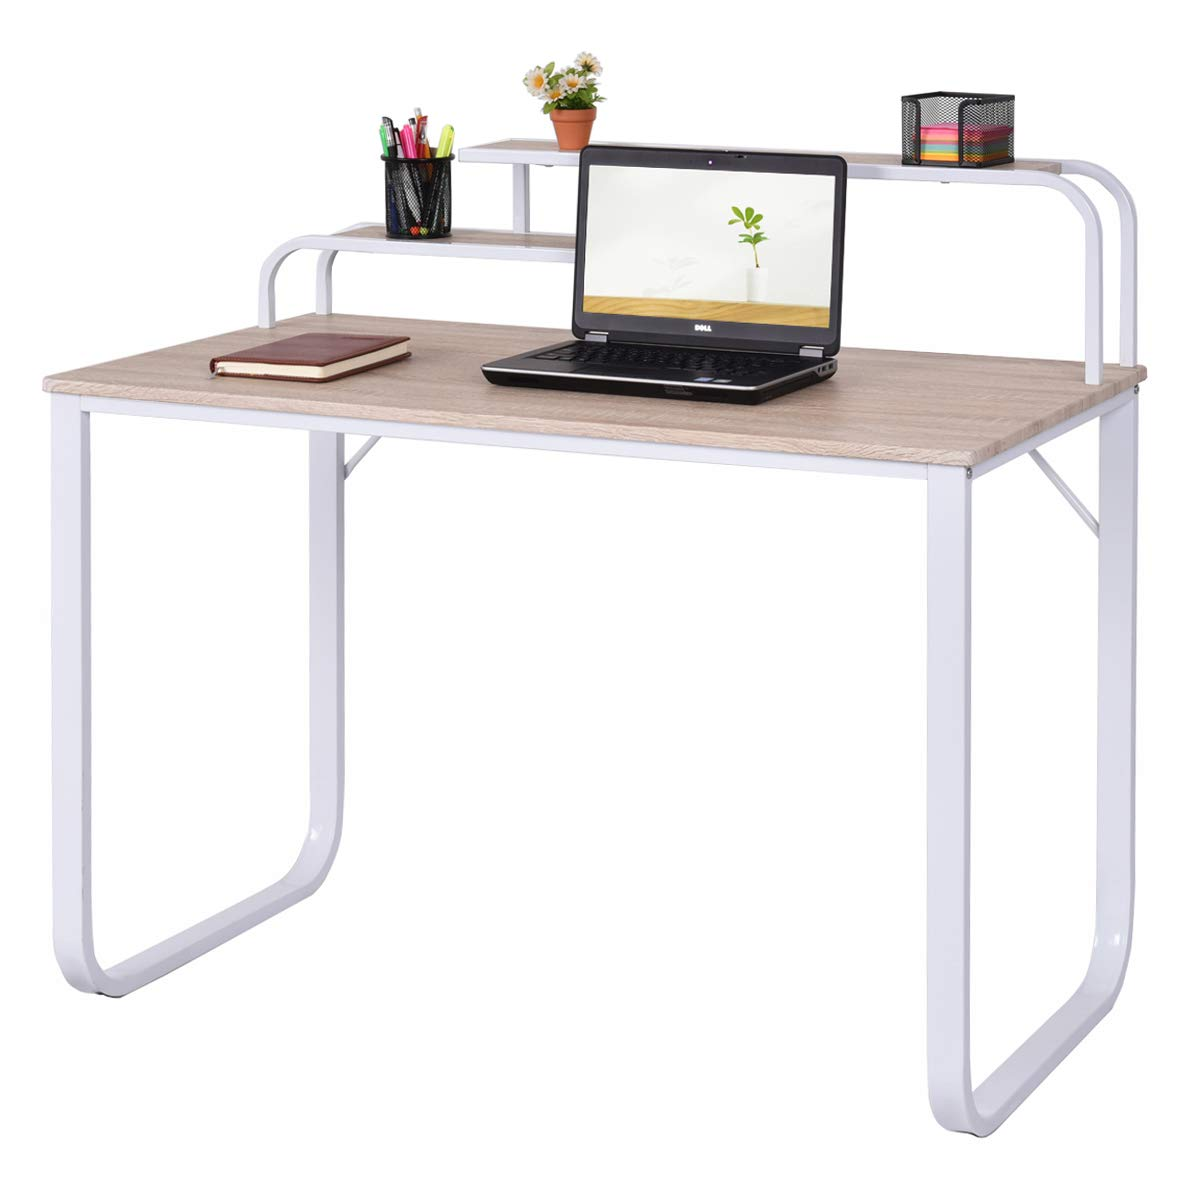 Attrayant TANGKULA Computer Desk Laptop Writing Desk Student Study Desk Modern Simple  Style Home Office Desk Large Size PC Laptop Study Table Workstation Writing  Desk ...